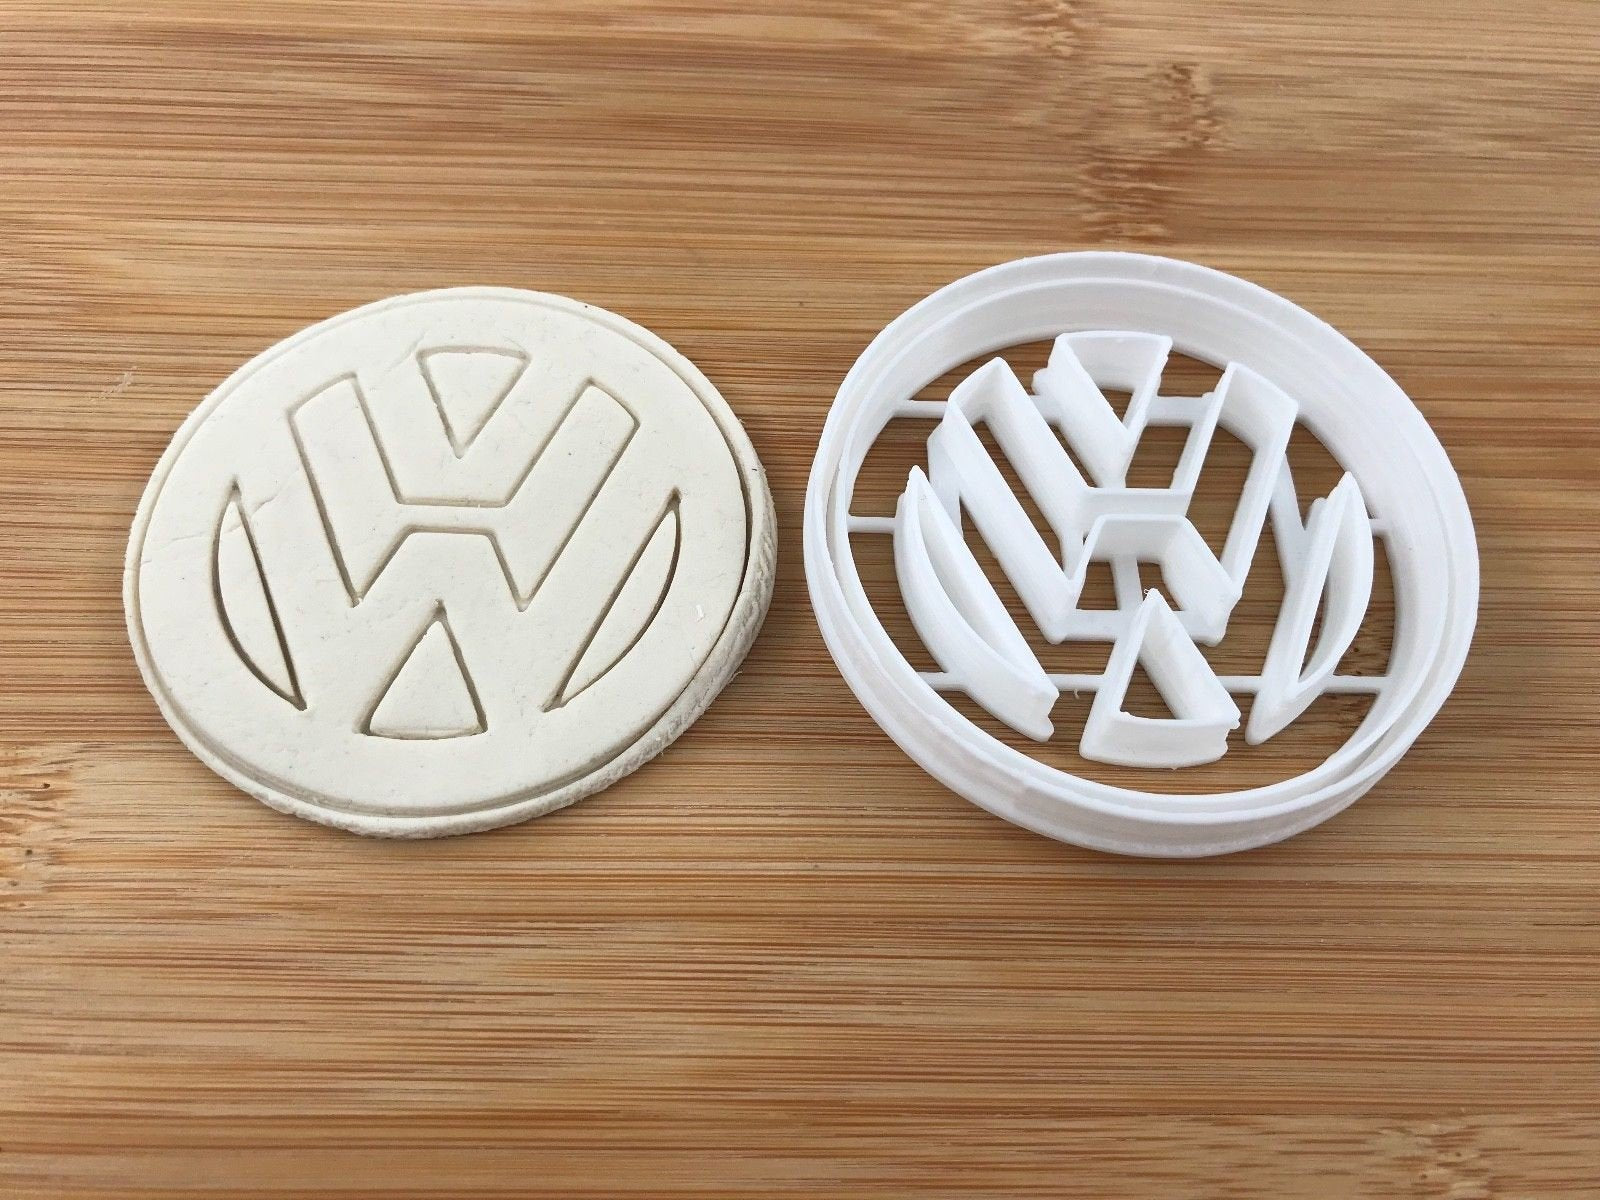 Vw Automotive 005 Cookie Fondant Cutter Cake Decorating 5 5 Cm 7 5 Cm